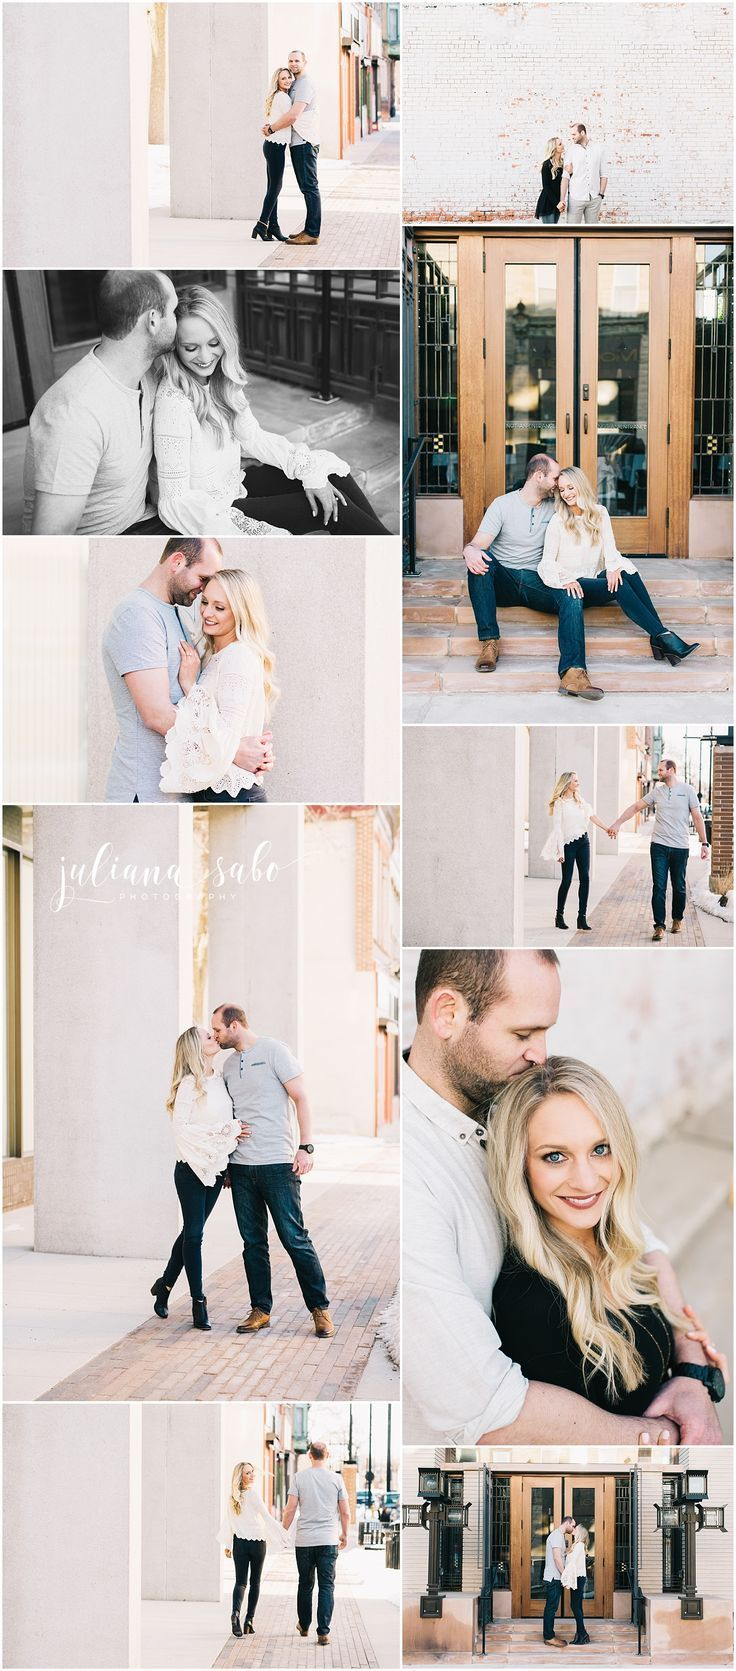 Urban Engagement Session   Downtown Engagement Photos   Iowa Engagement   Downto...#downto #downtown #engagement #iowa #photos #session #urban